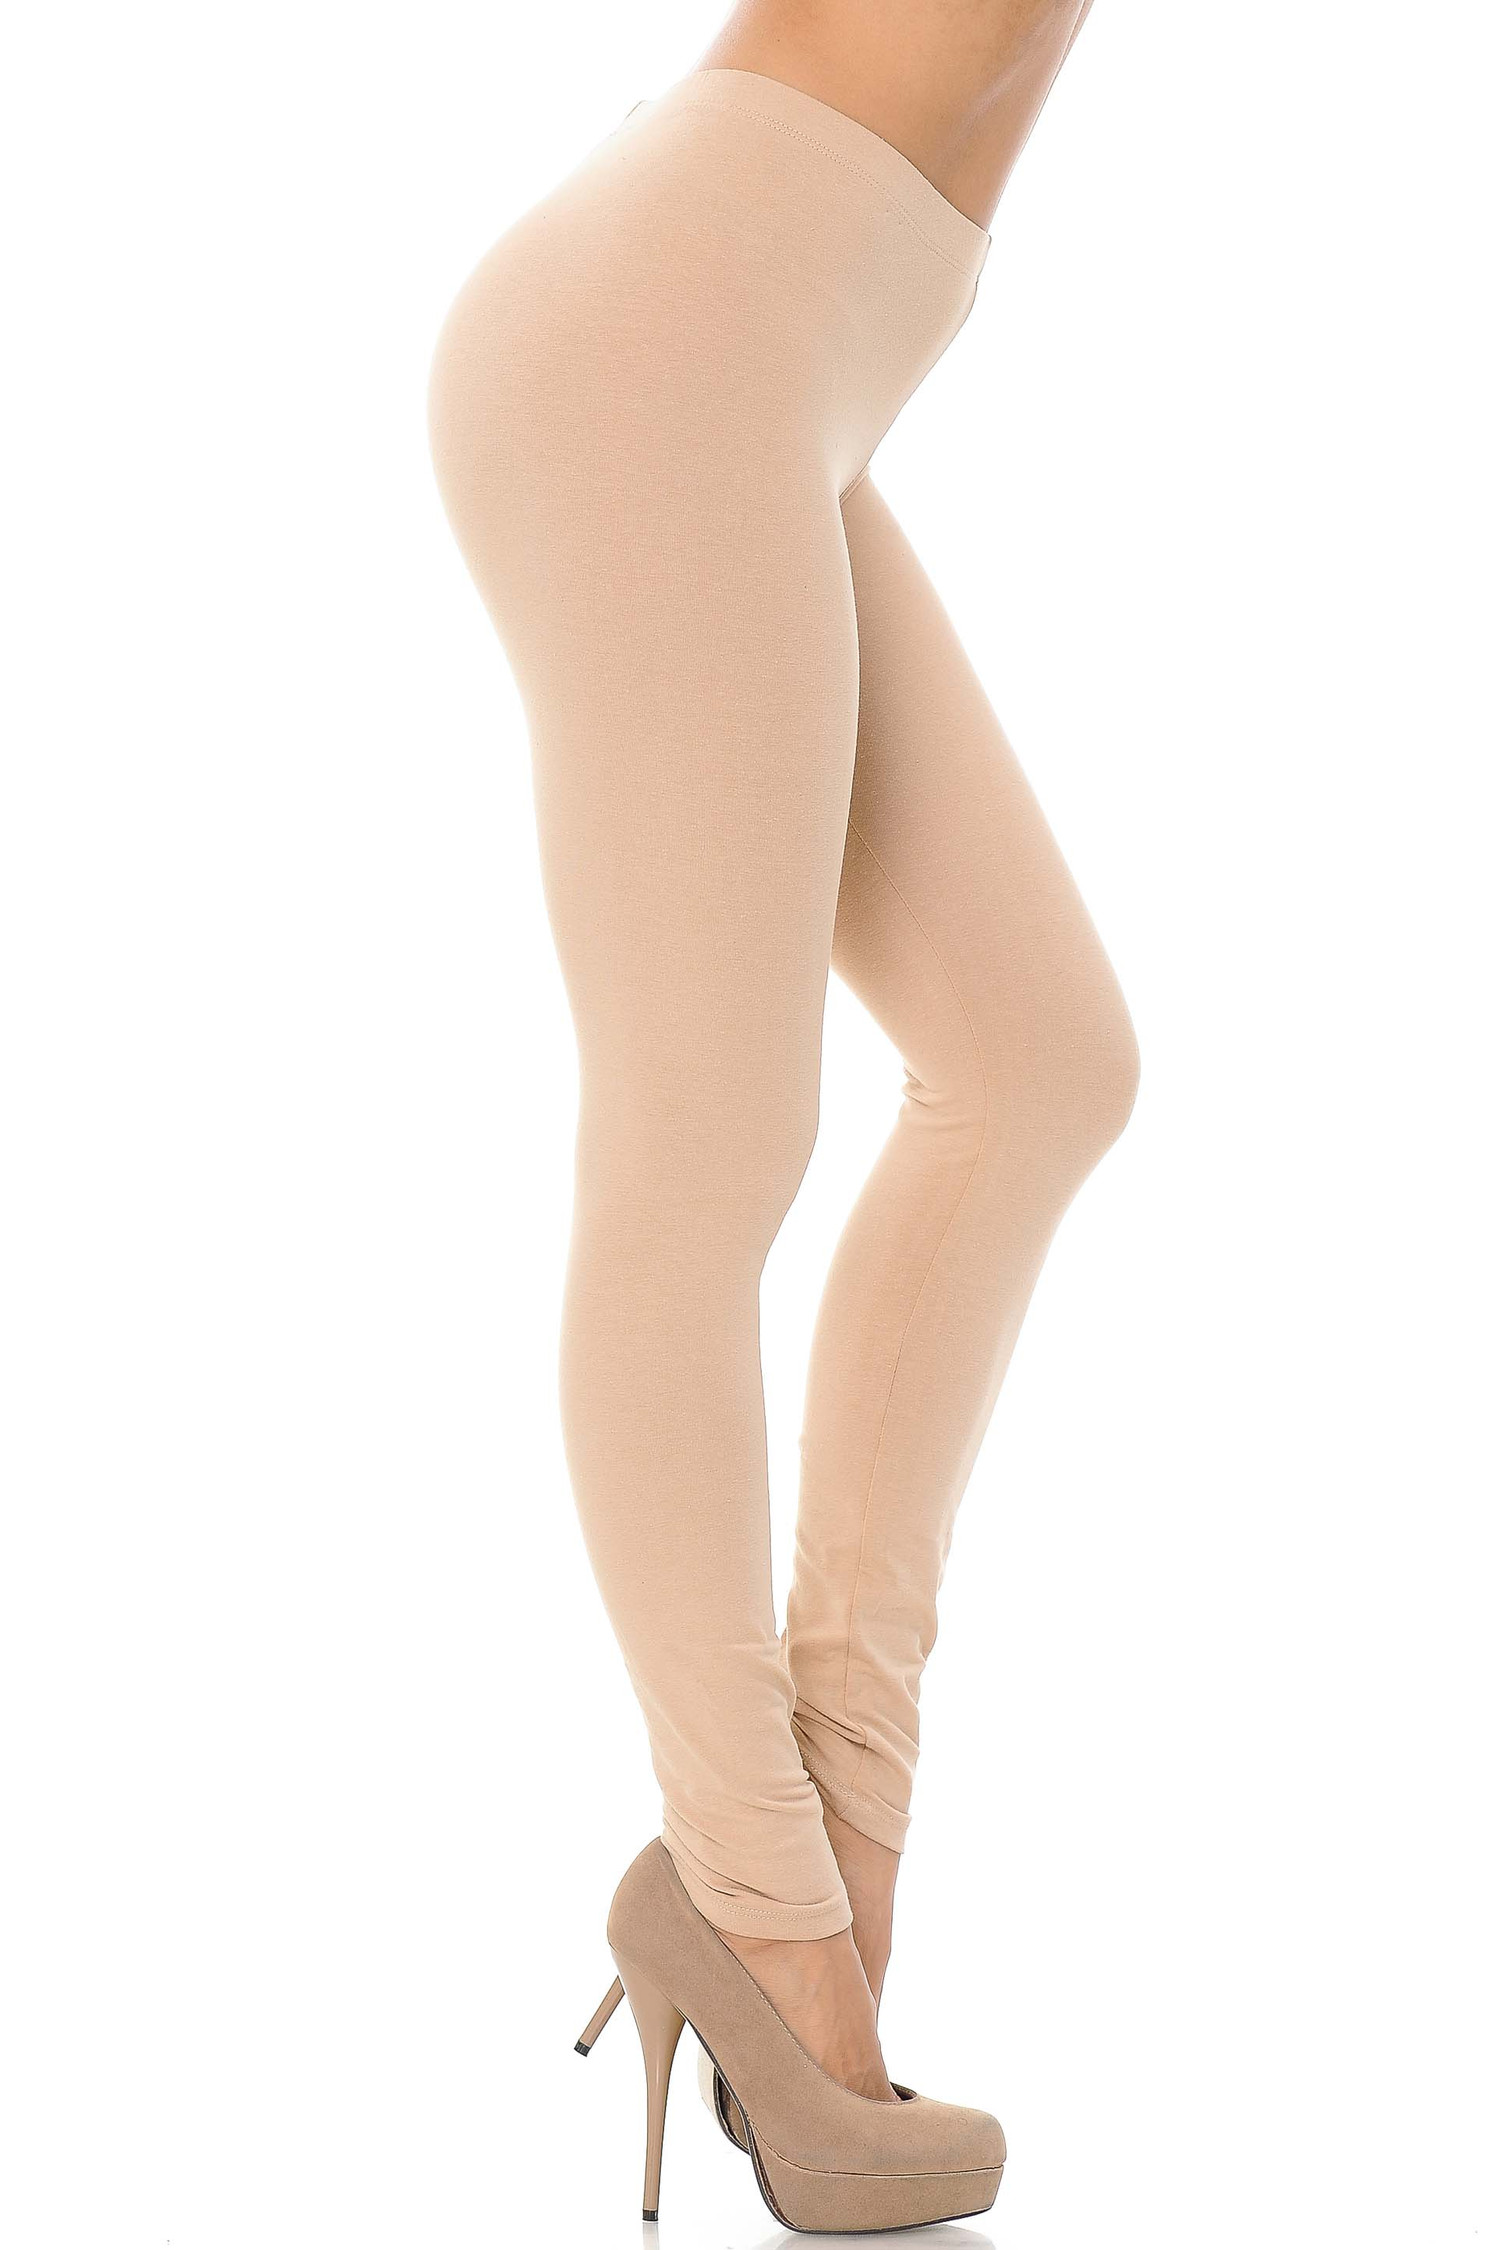 Right side view image of a beige pair of ankle length made in the USA cotton leggings.